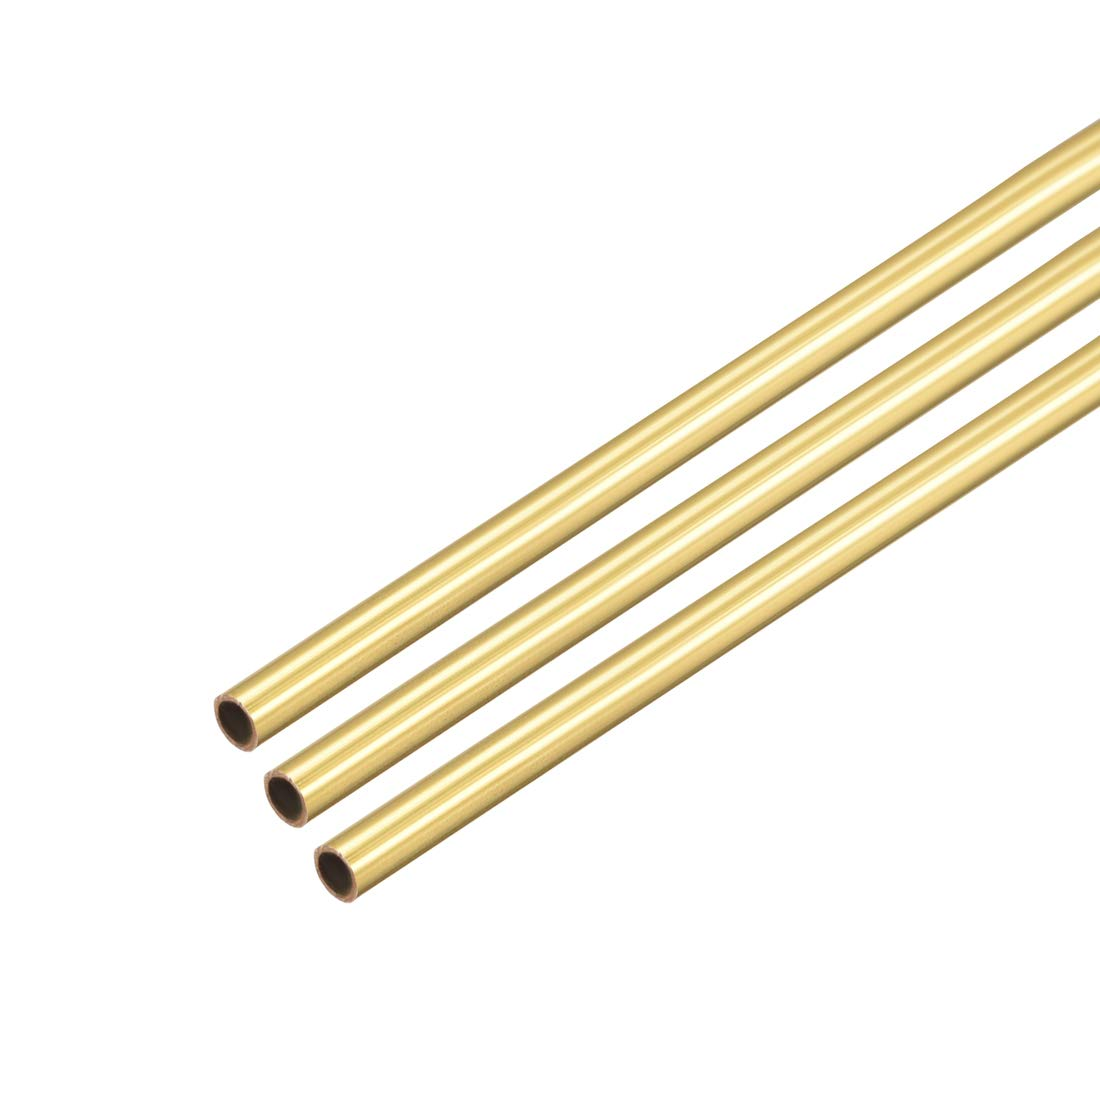 uxcell Brass Round Tube, 300mm Length 1.5mm OD 0.2mm Wall Thickness, Seamless Straight Pipe Tubing 3 Pcs